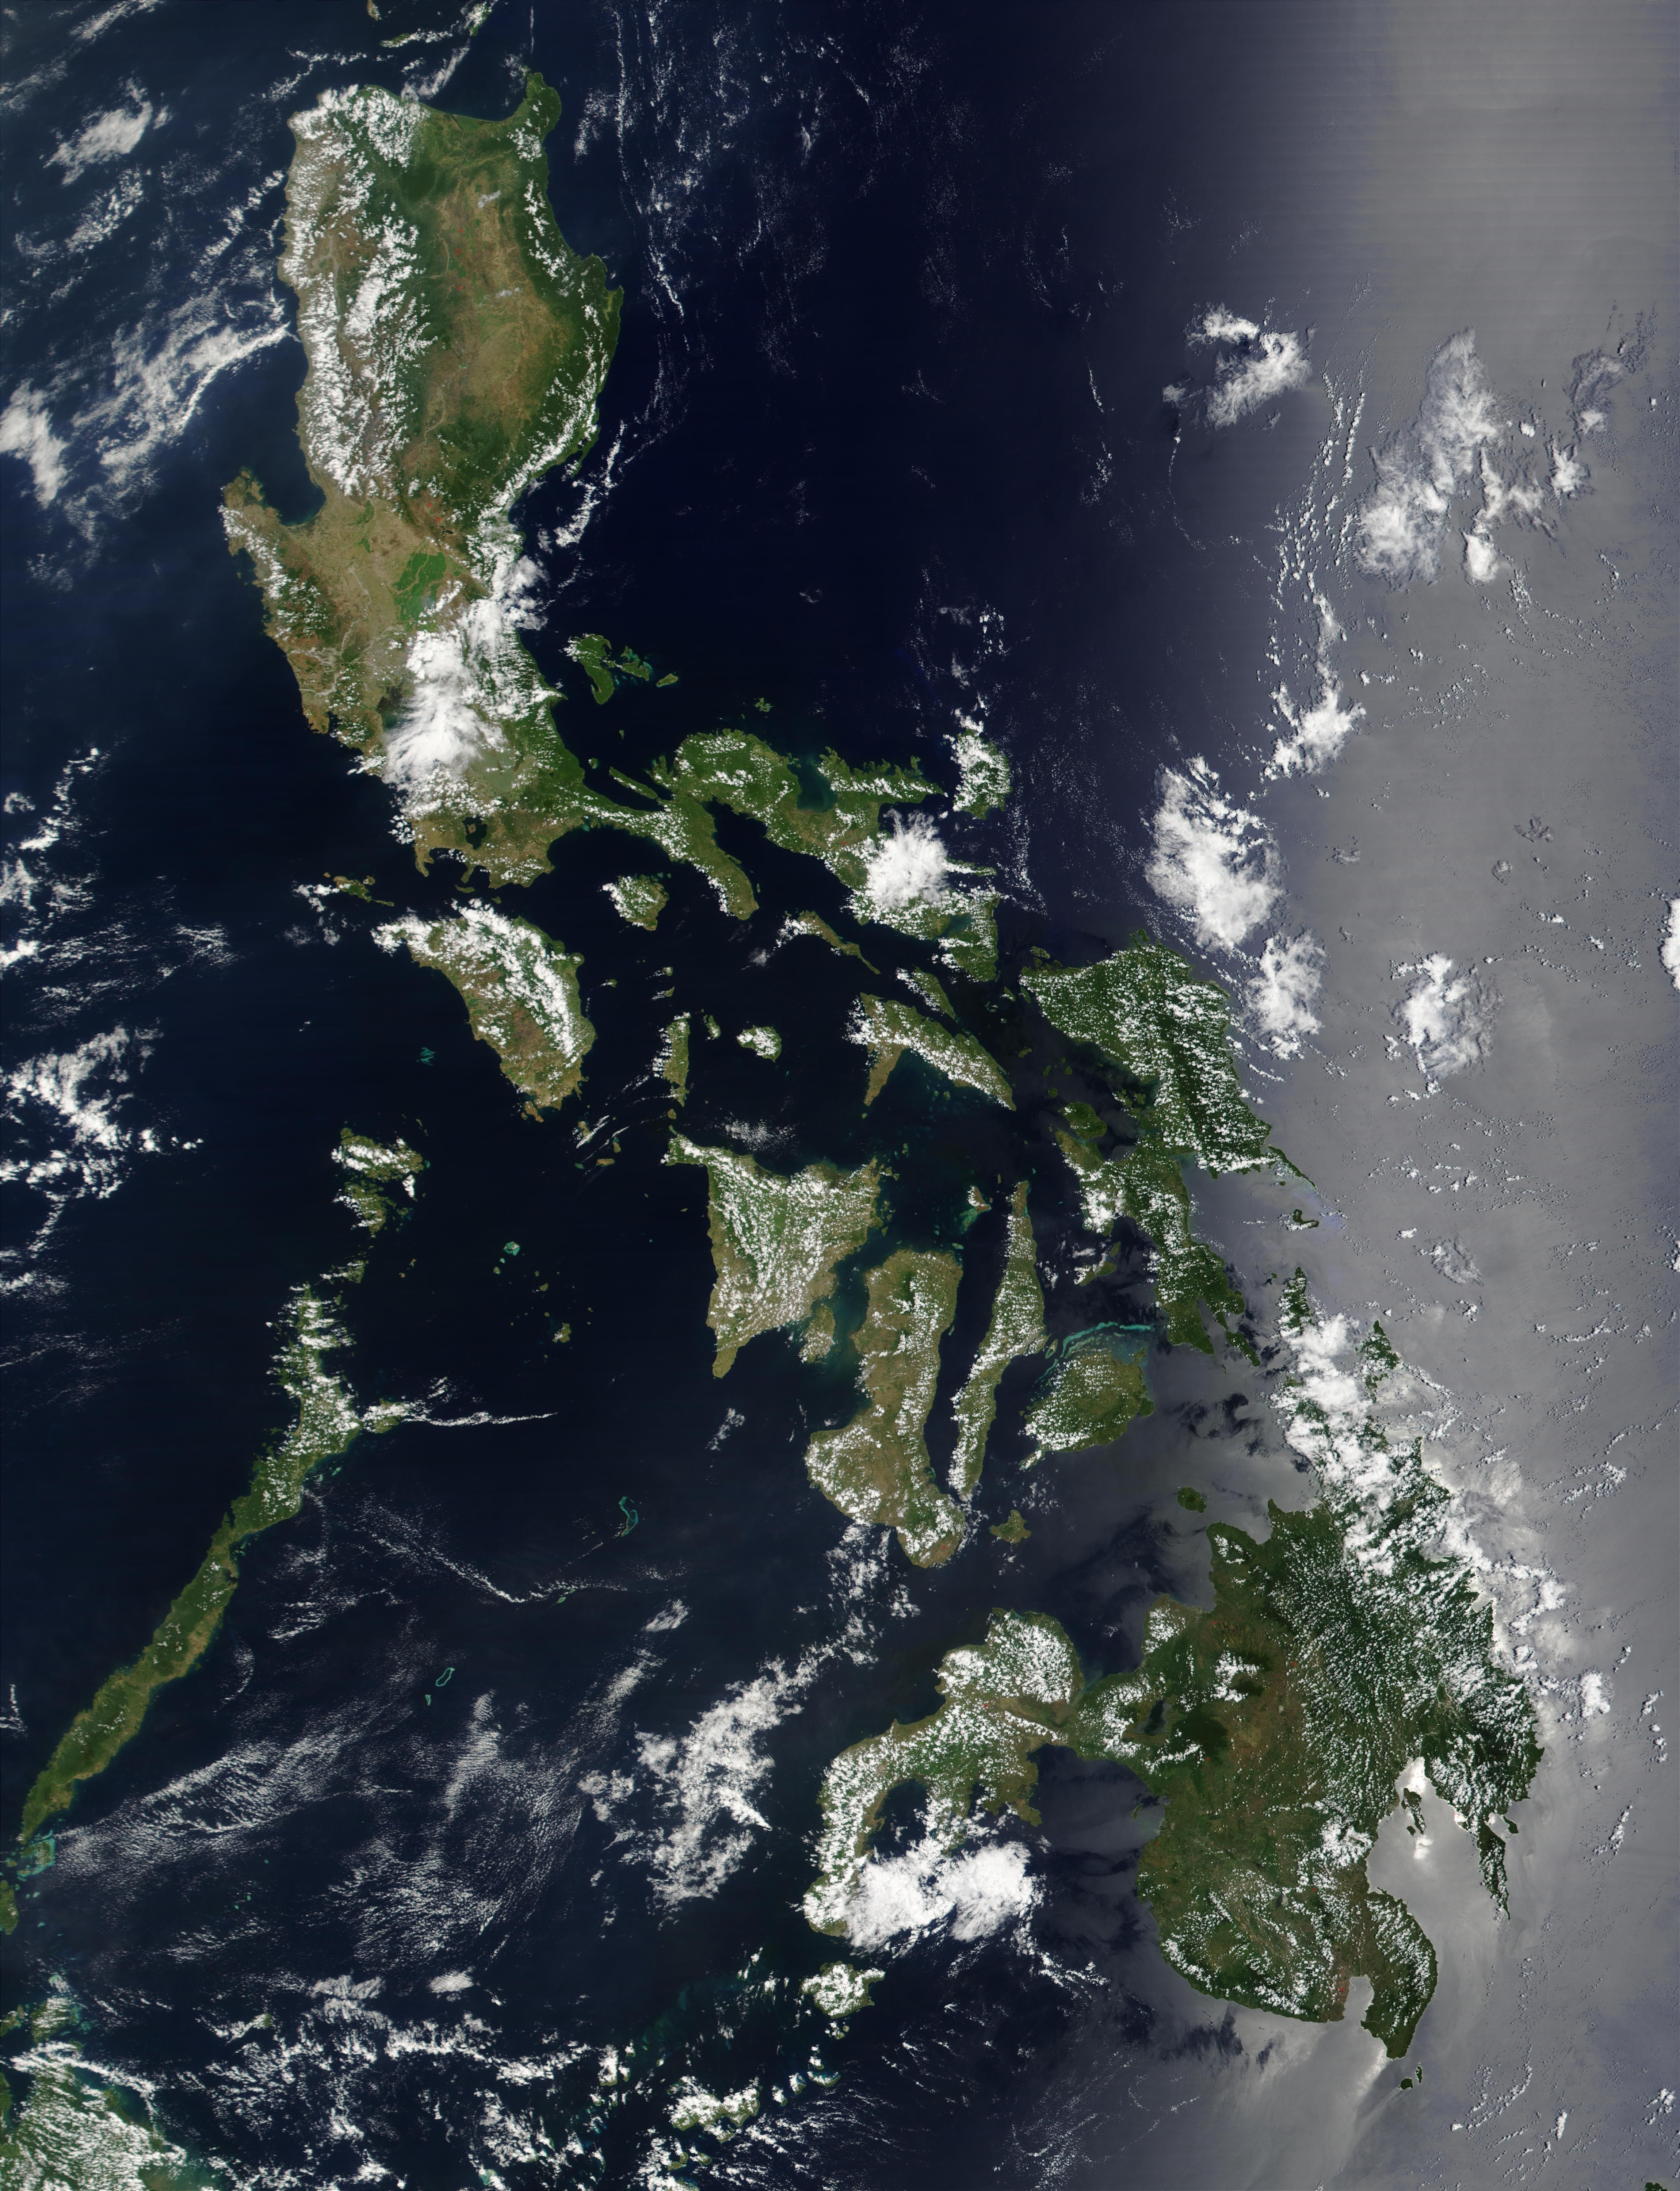 Philippines satellite view. in 2019 | Philippines, Canvas ... on google voice, maps that show property lines, google map maker, dubai street view, maps earth, google moon, street level driving view, journey planner, nokia maps, google earth, maps google, route planning software, maps and directions, yahoo! maps, aerial view, maps street, google latitude, google search, earth view, google street view, satellite map images with missing or unclear data, google mars, see your house street view, manhattan view, maps from mexico city, bing maps, maps showing property lines, bing maps platform, web mapping, google sky, maps get directions, maps latitude, maps weather,